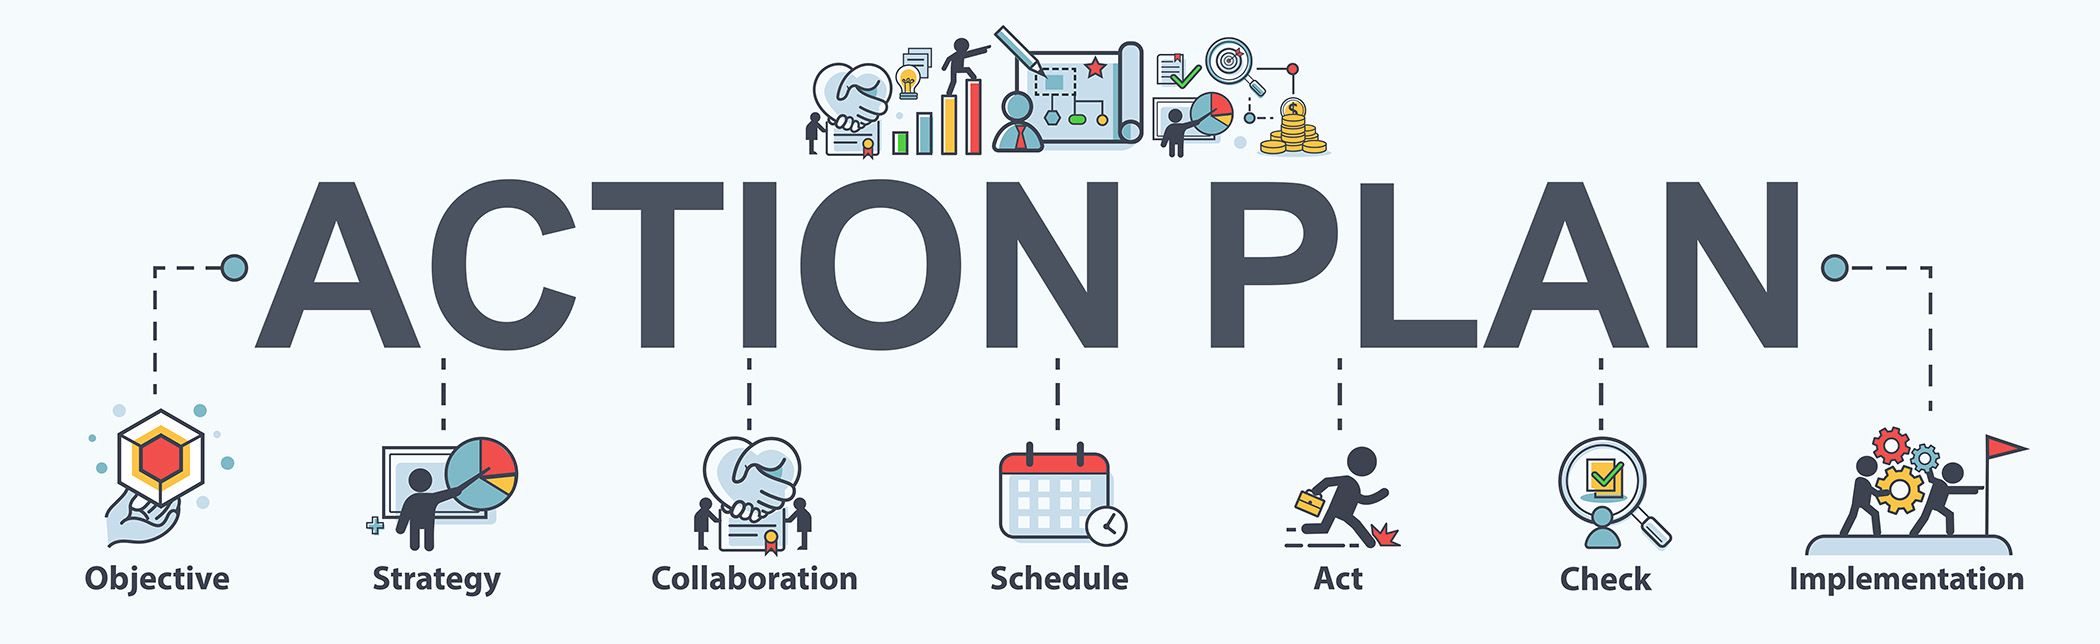 Action plan infographic